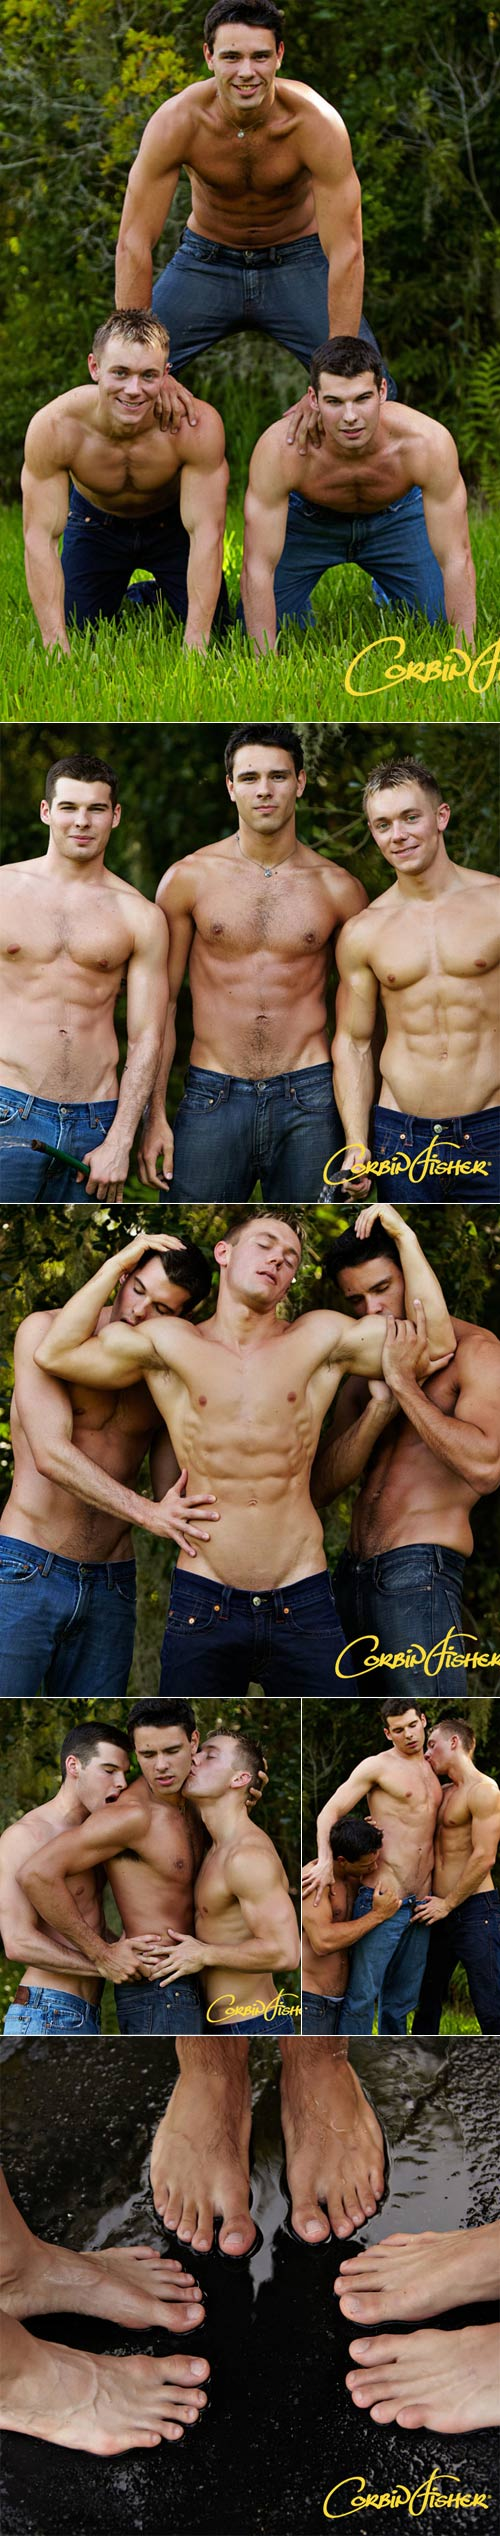 Dawson & Ethan Tag Trey at CorbinFisher